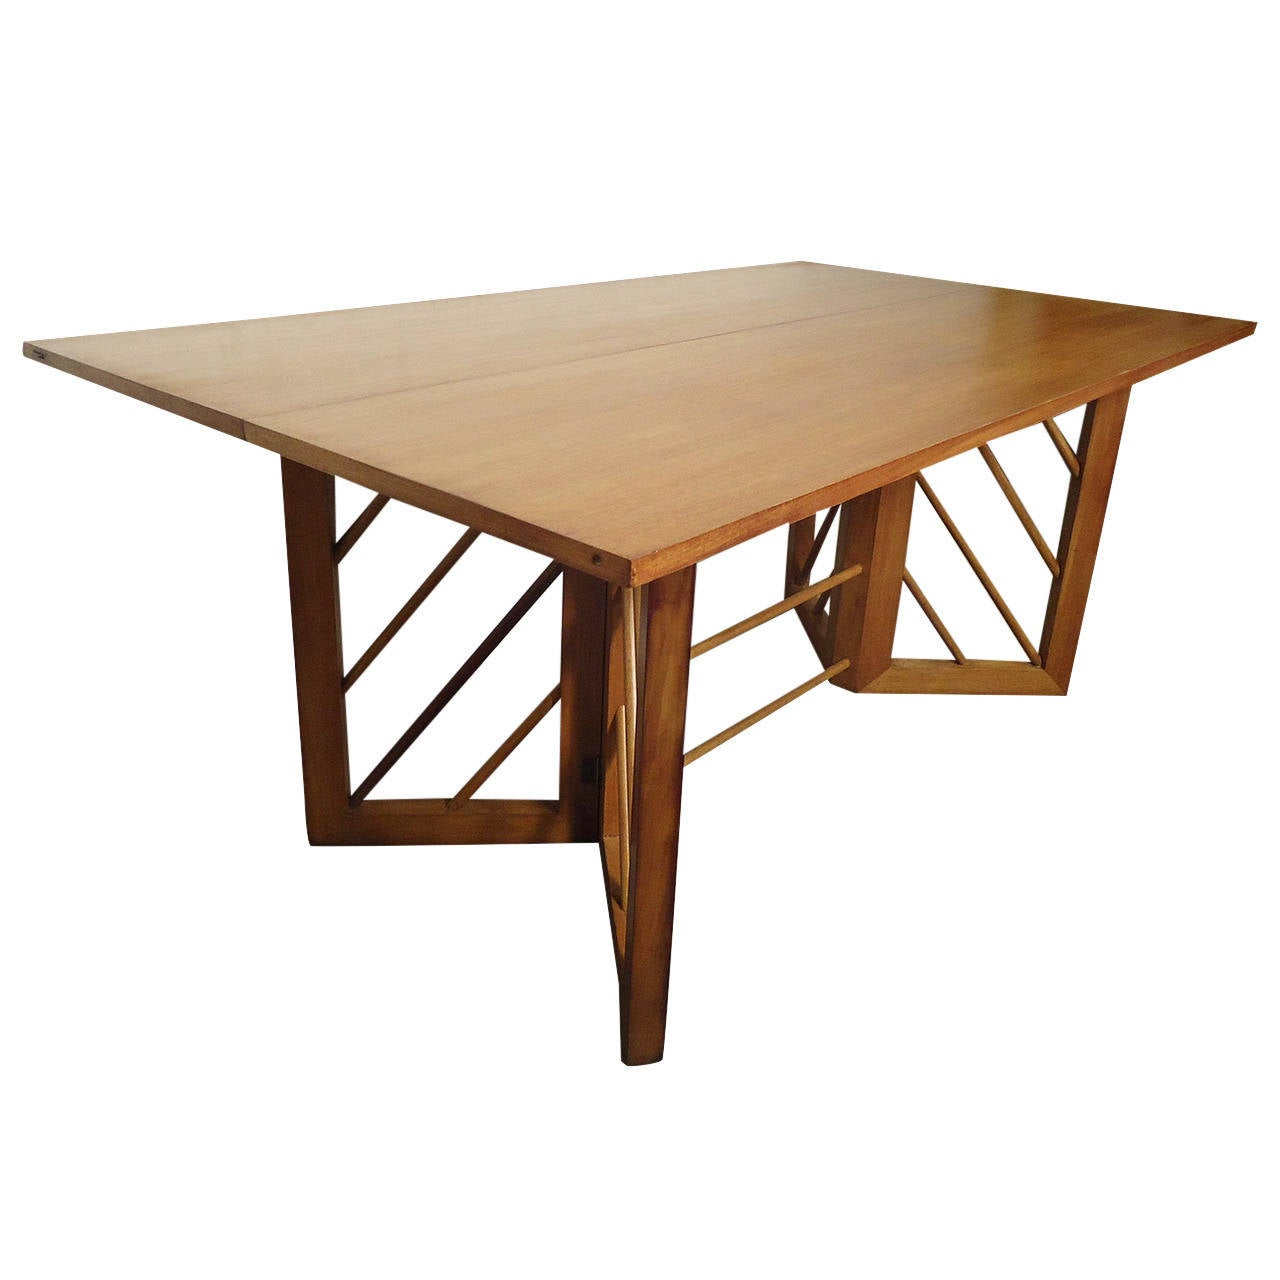 Mid century modern folding console or dining table at 1stdibs - Folding dining table ...